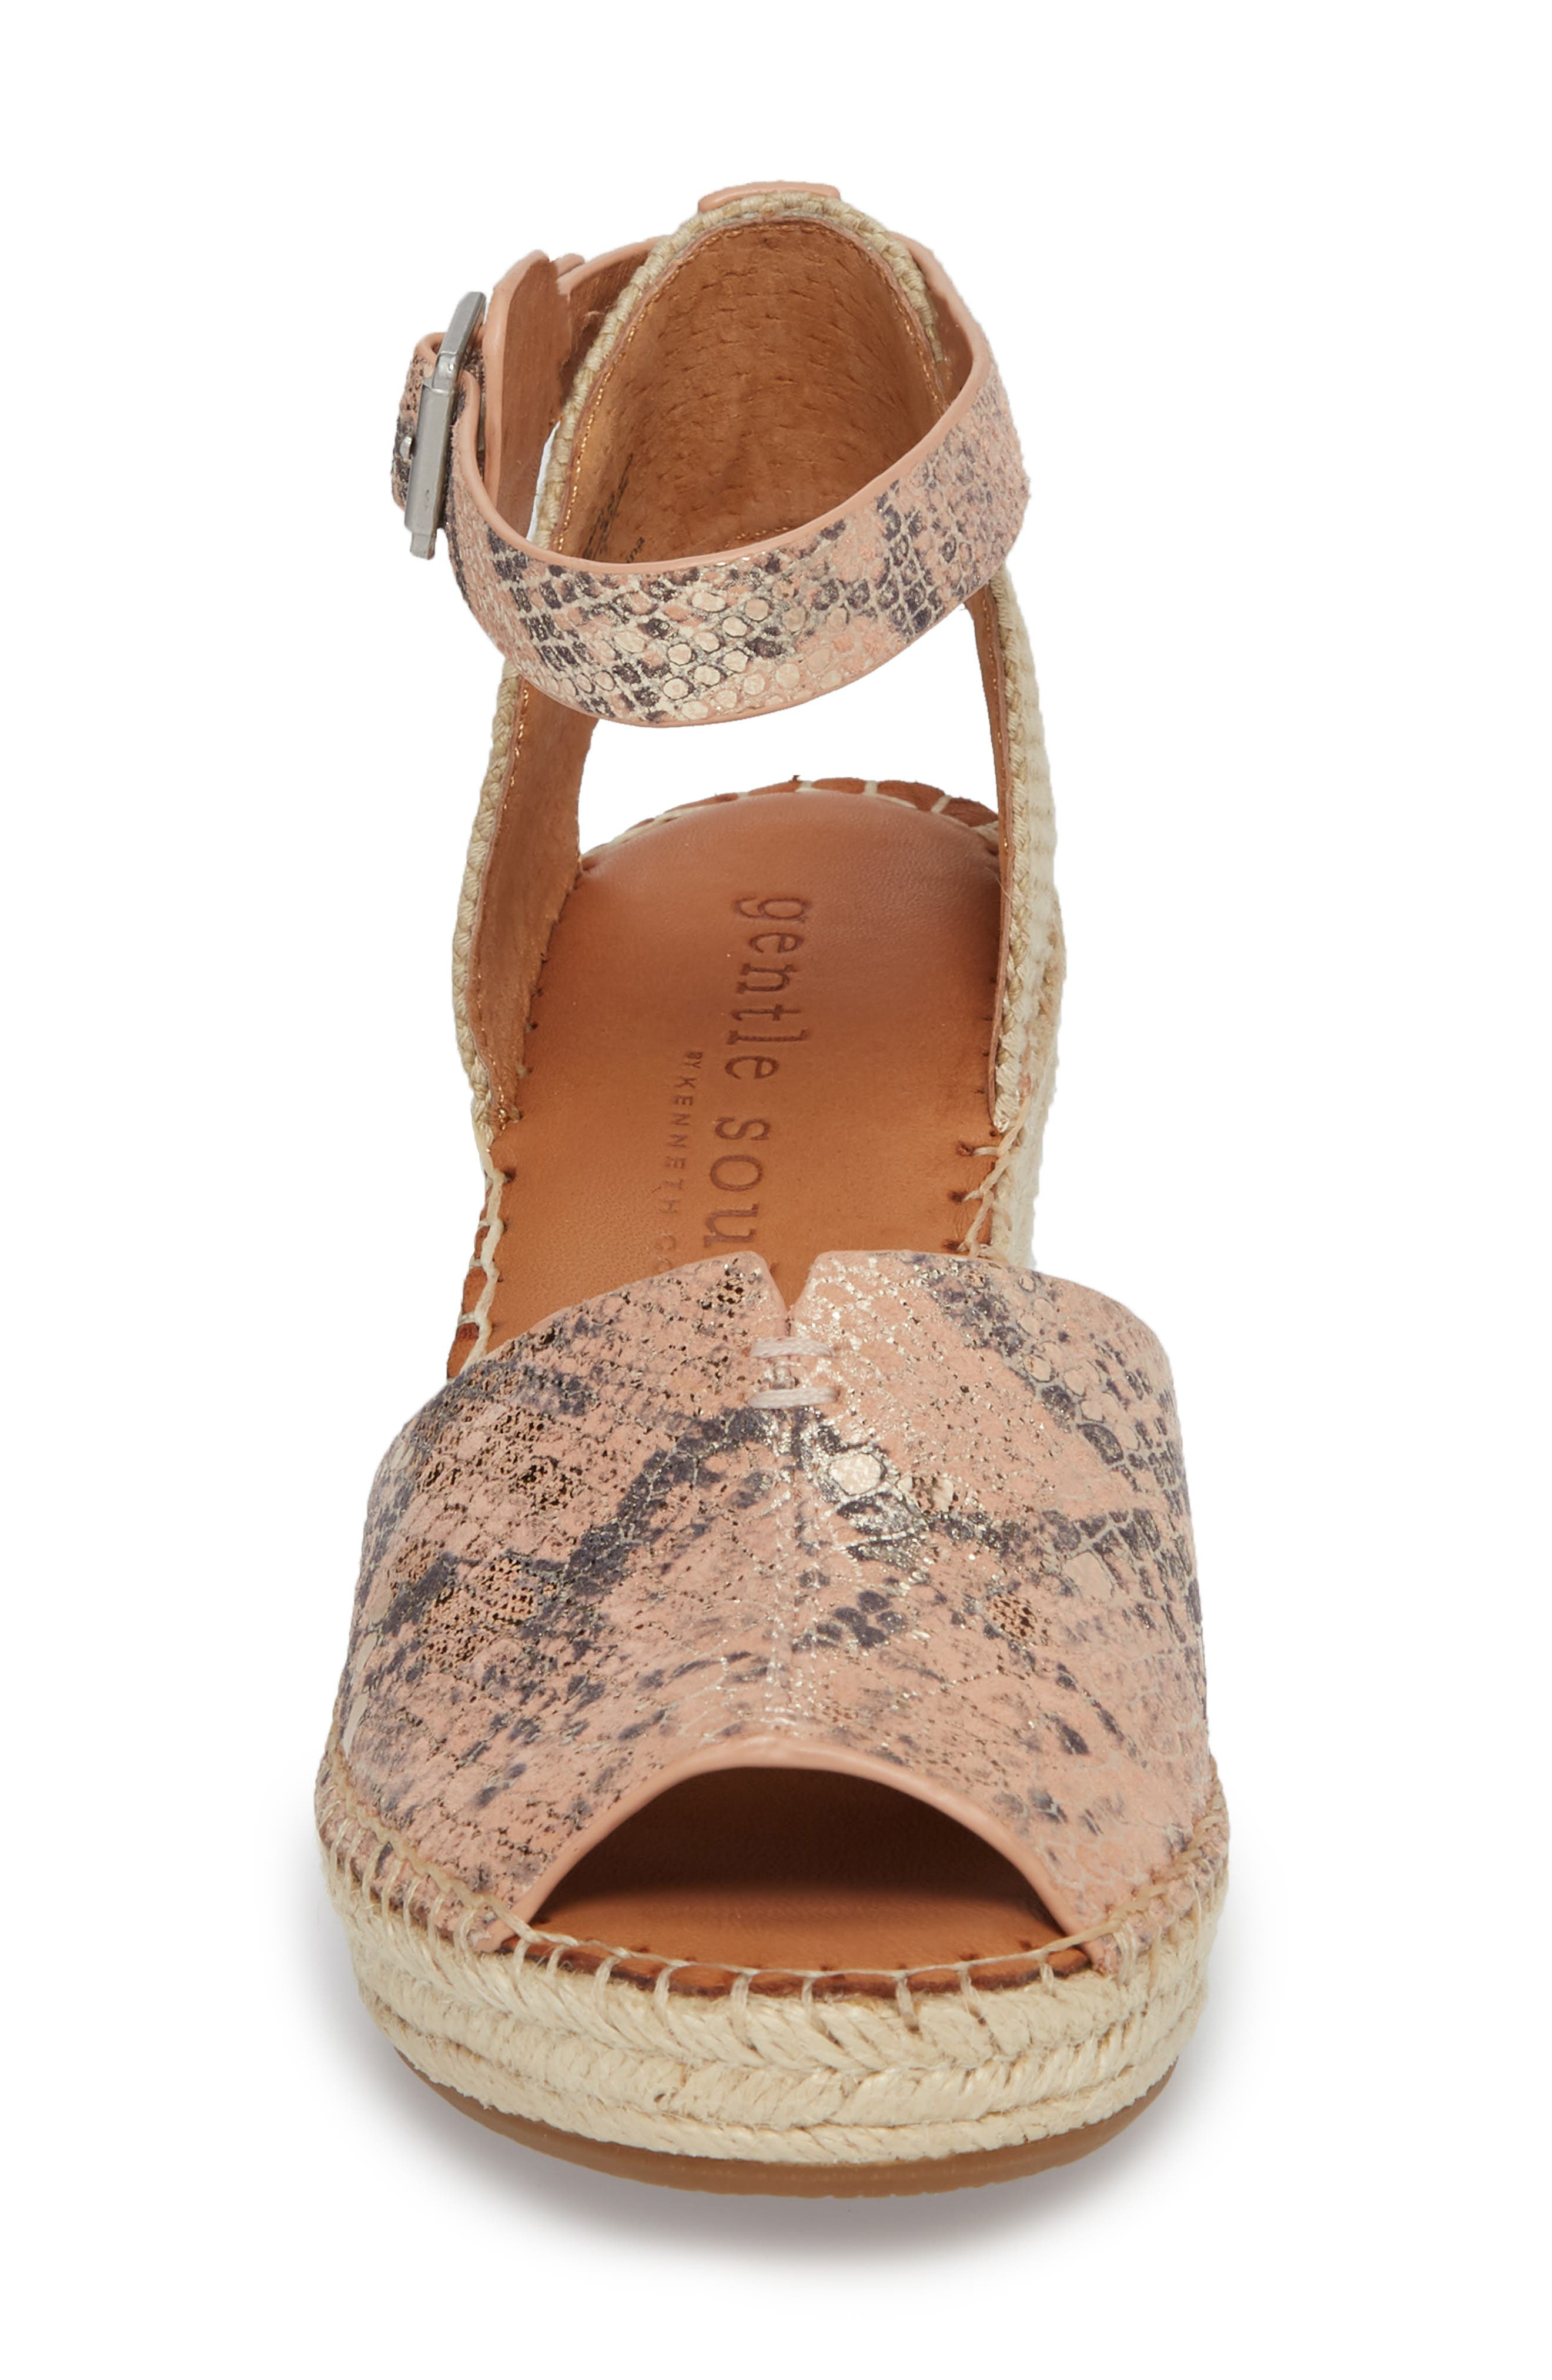 GENTLE SOULS BY KENNETH COLE, Charli Espadrille Wedge, Alternate thumbnail 4, color, ROSE METALLIC LEATHER